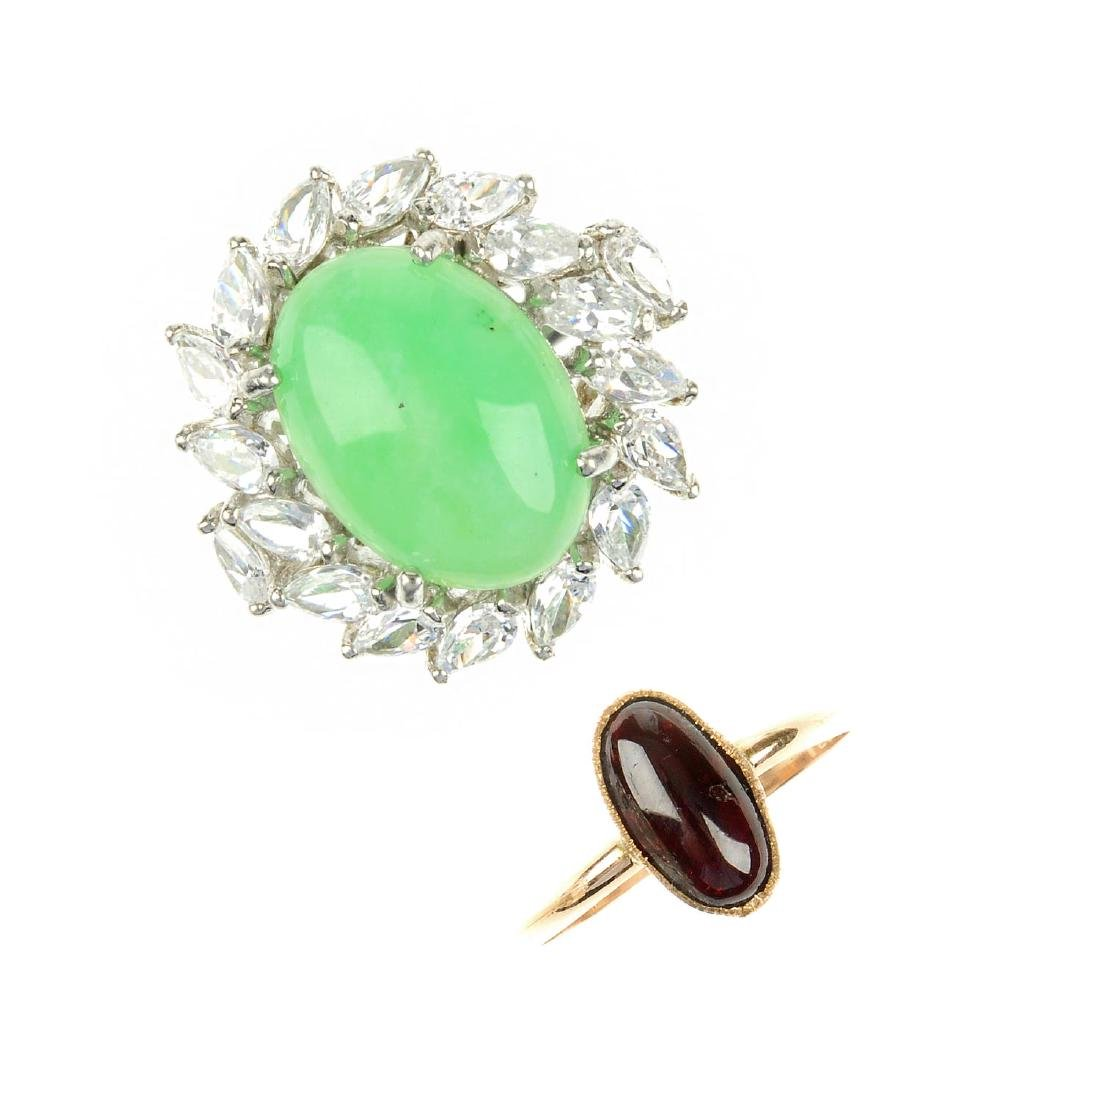 A jade ring, a garnet cabochon ring, a further ring and